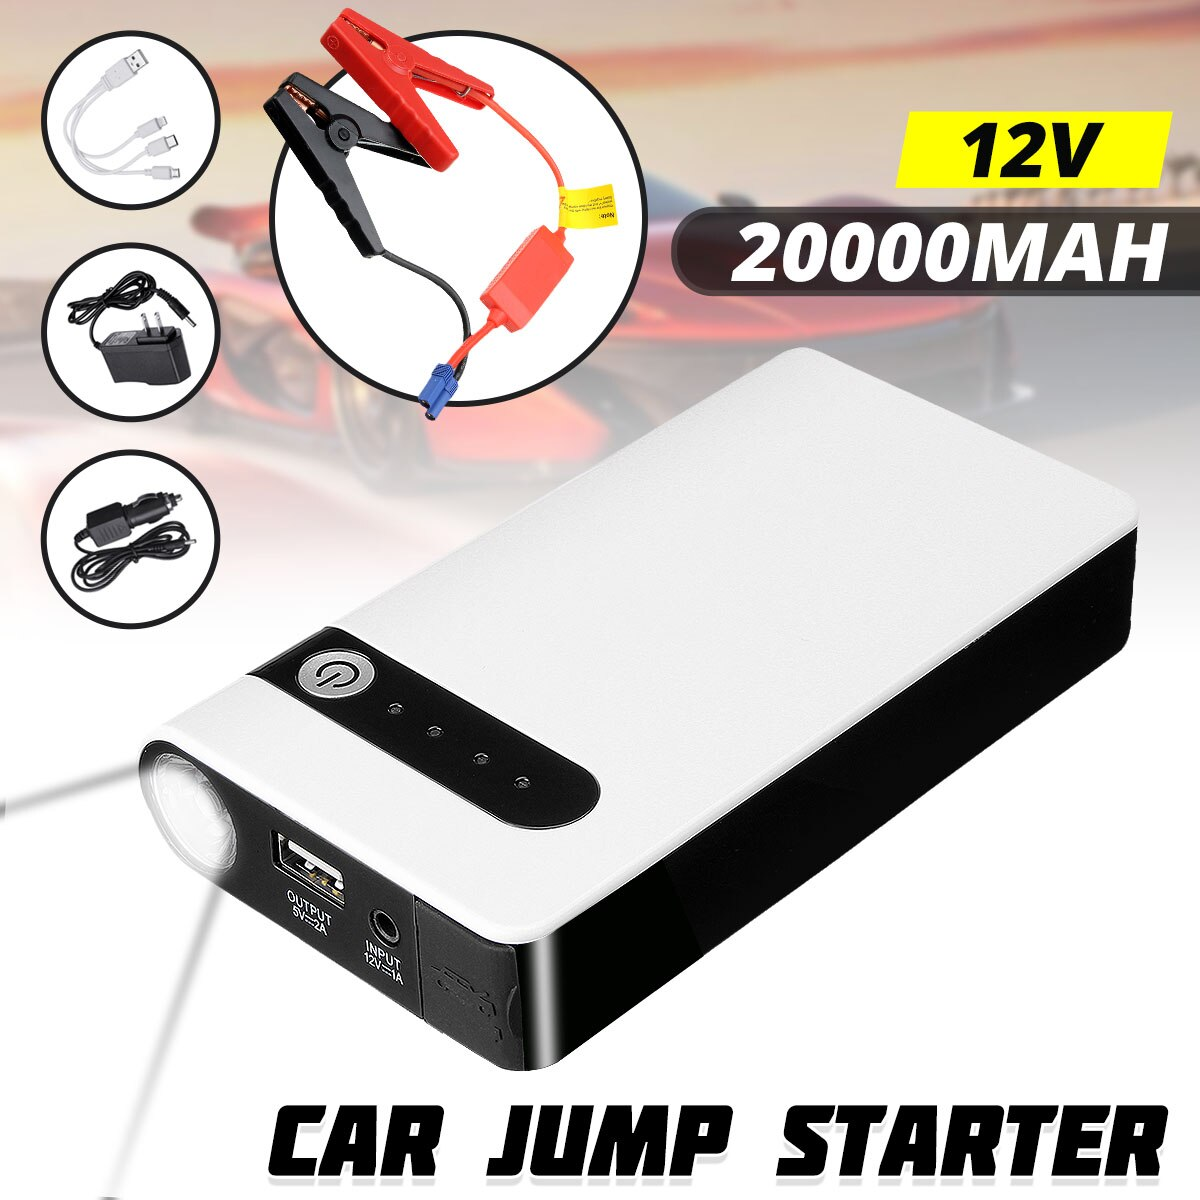 20000mAh 12V Portable Car Jump Starter Emergency Battery Booster Powerbank Car Charger with LED Flas